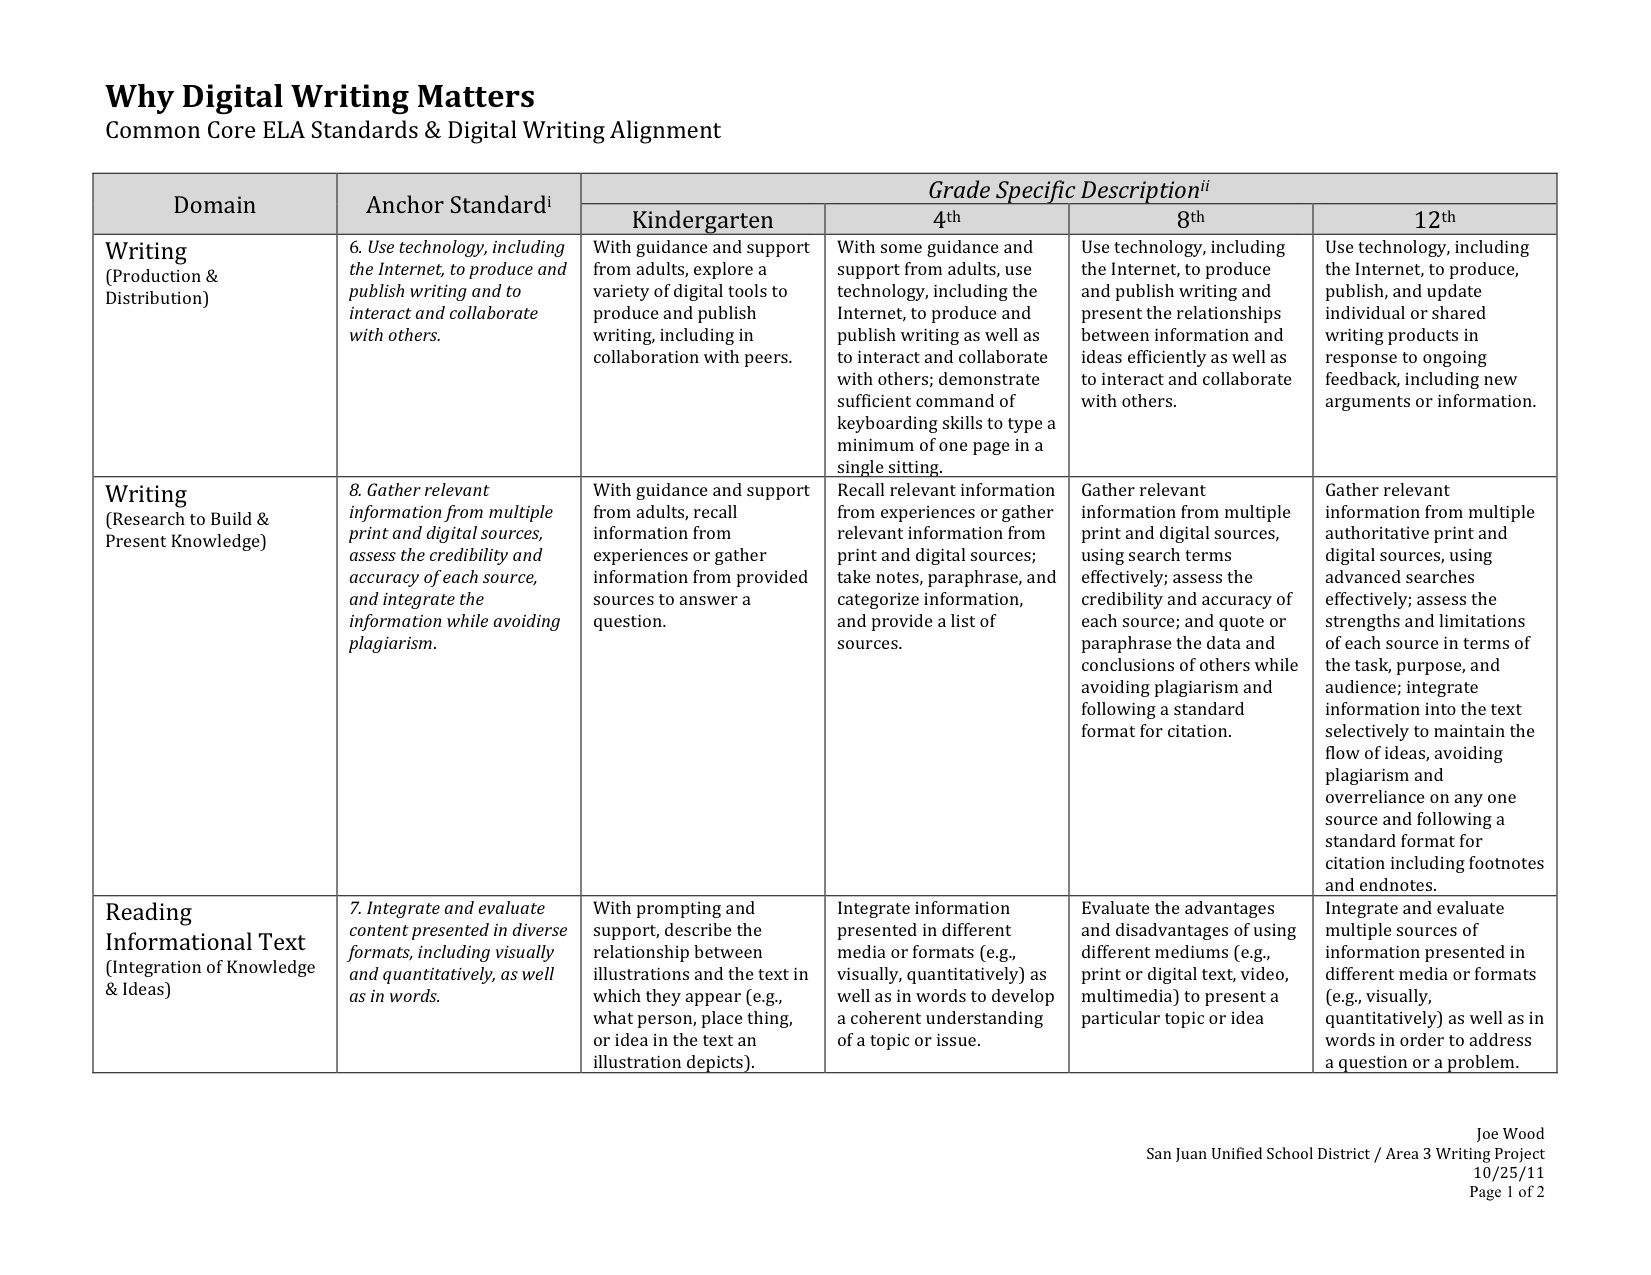 003 Research Paper Why Digital Writing Matters According To The Common Core Ela Standards1 Rubrics High Beautiful School Rubric English Argumentative Full